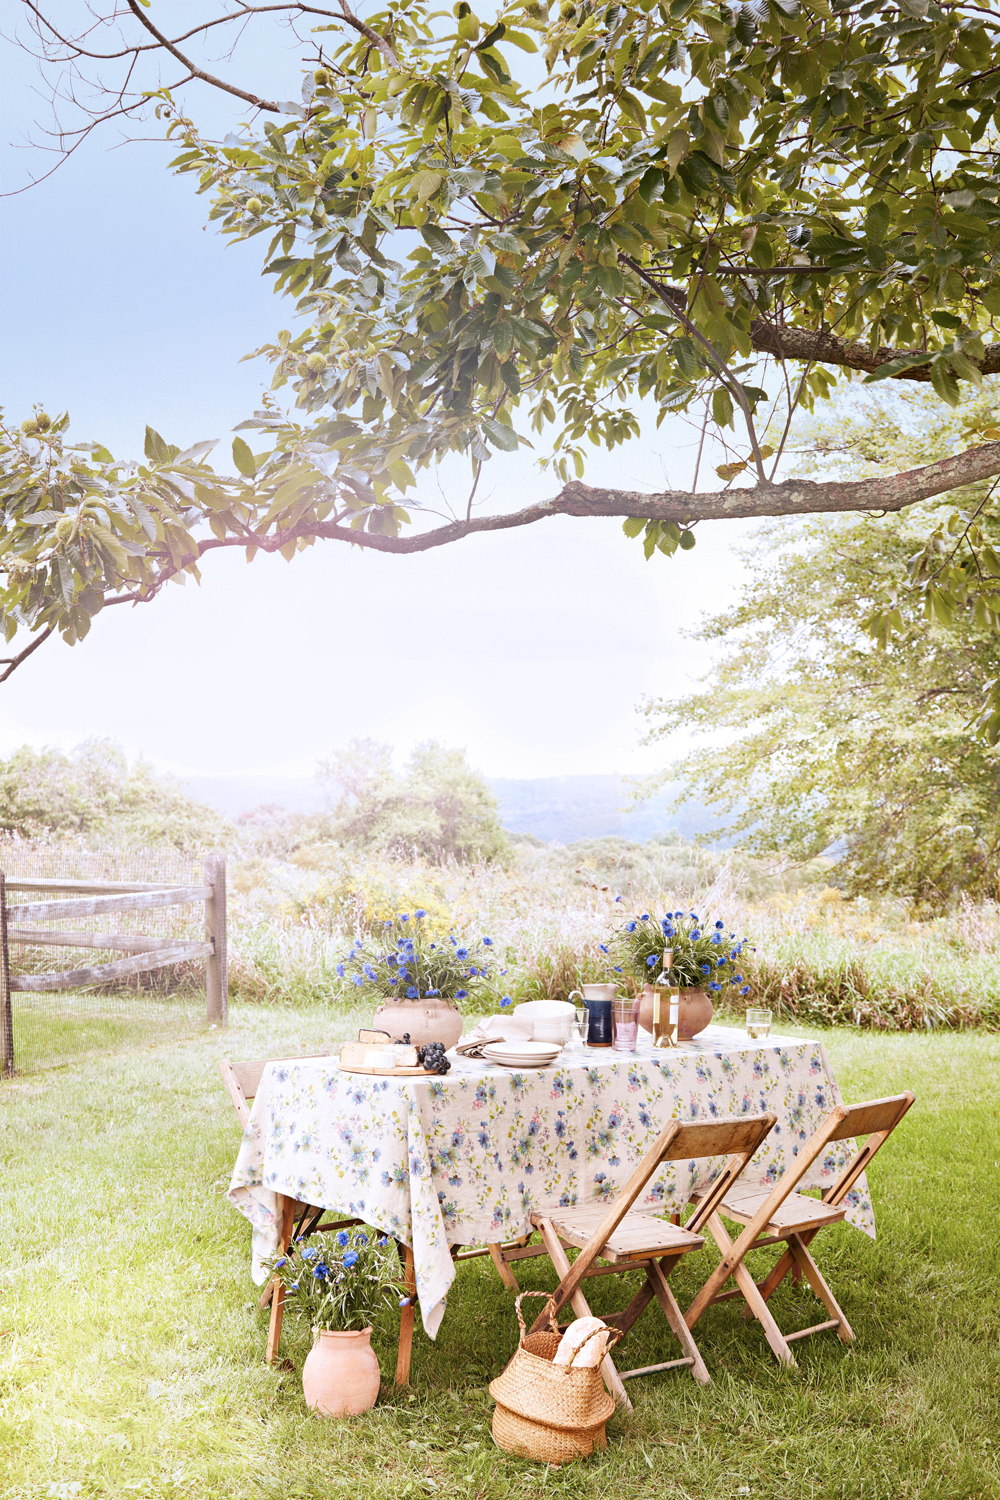 outdoor picnic table under tree by wooden fence